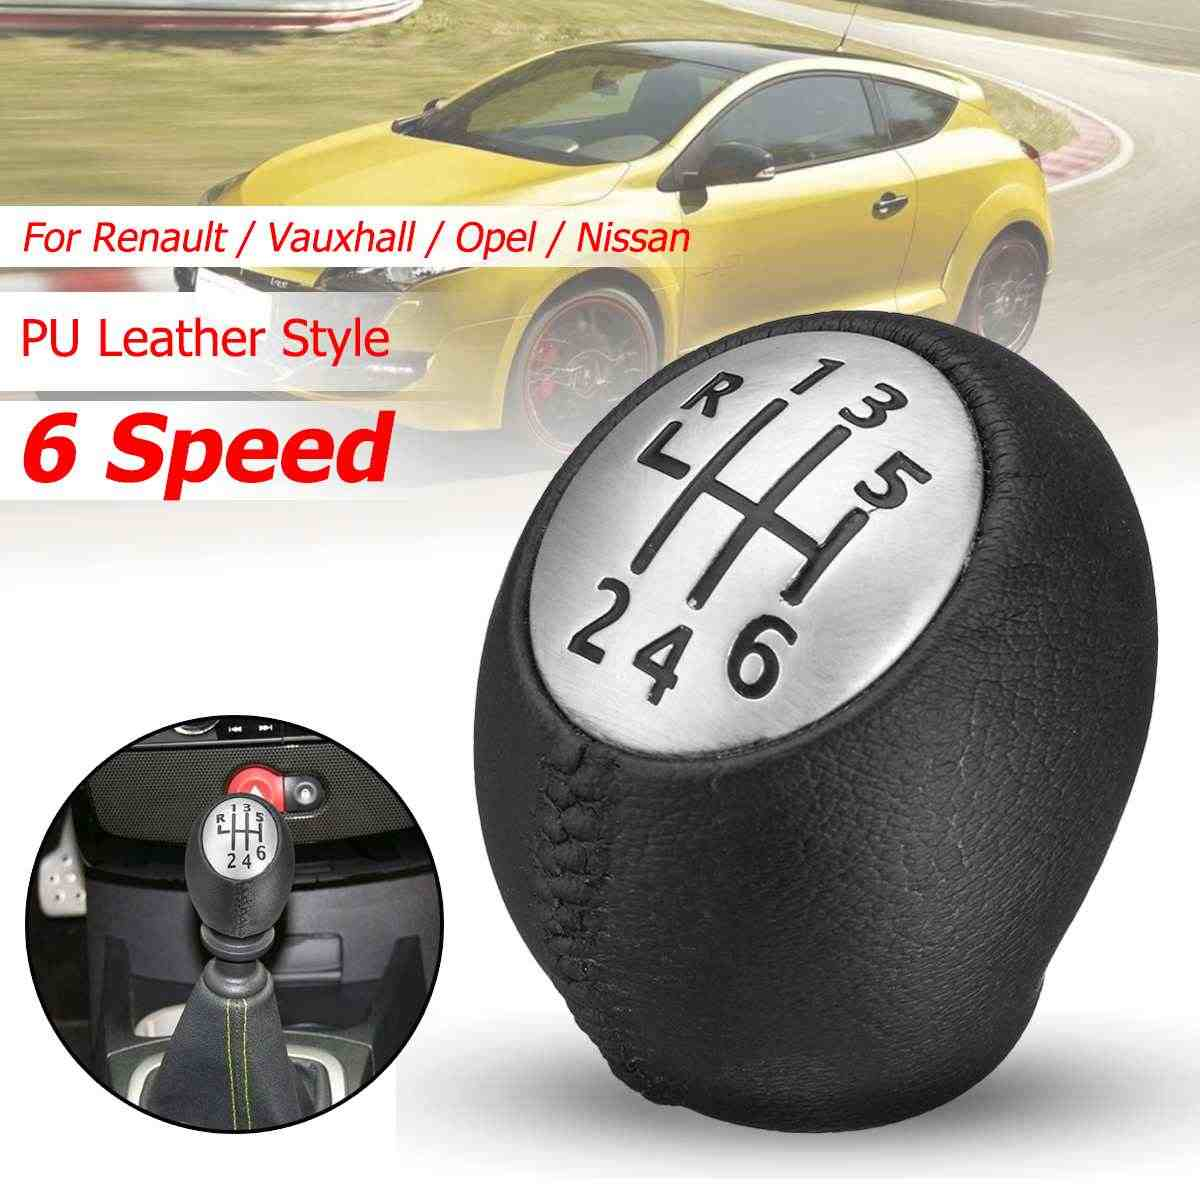 6 Speed PU Leather Gear Shift Shifter Knop Lever Stick voor Renault Megane Clio Laguna Scenic Voor Vauxhall Opel